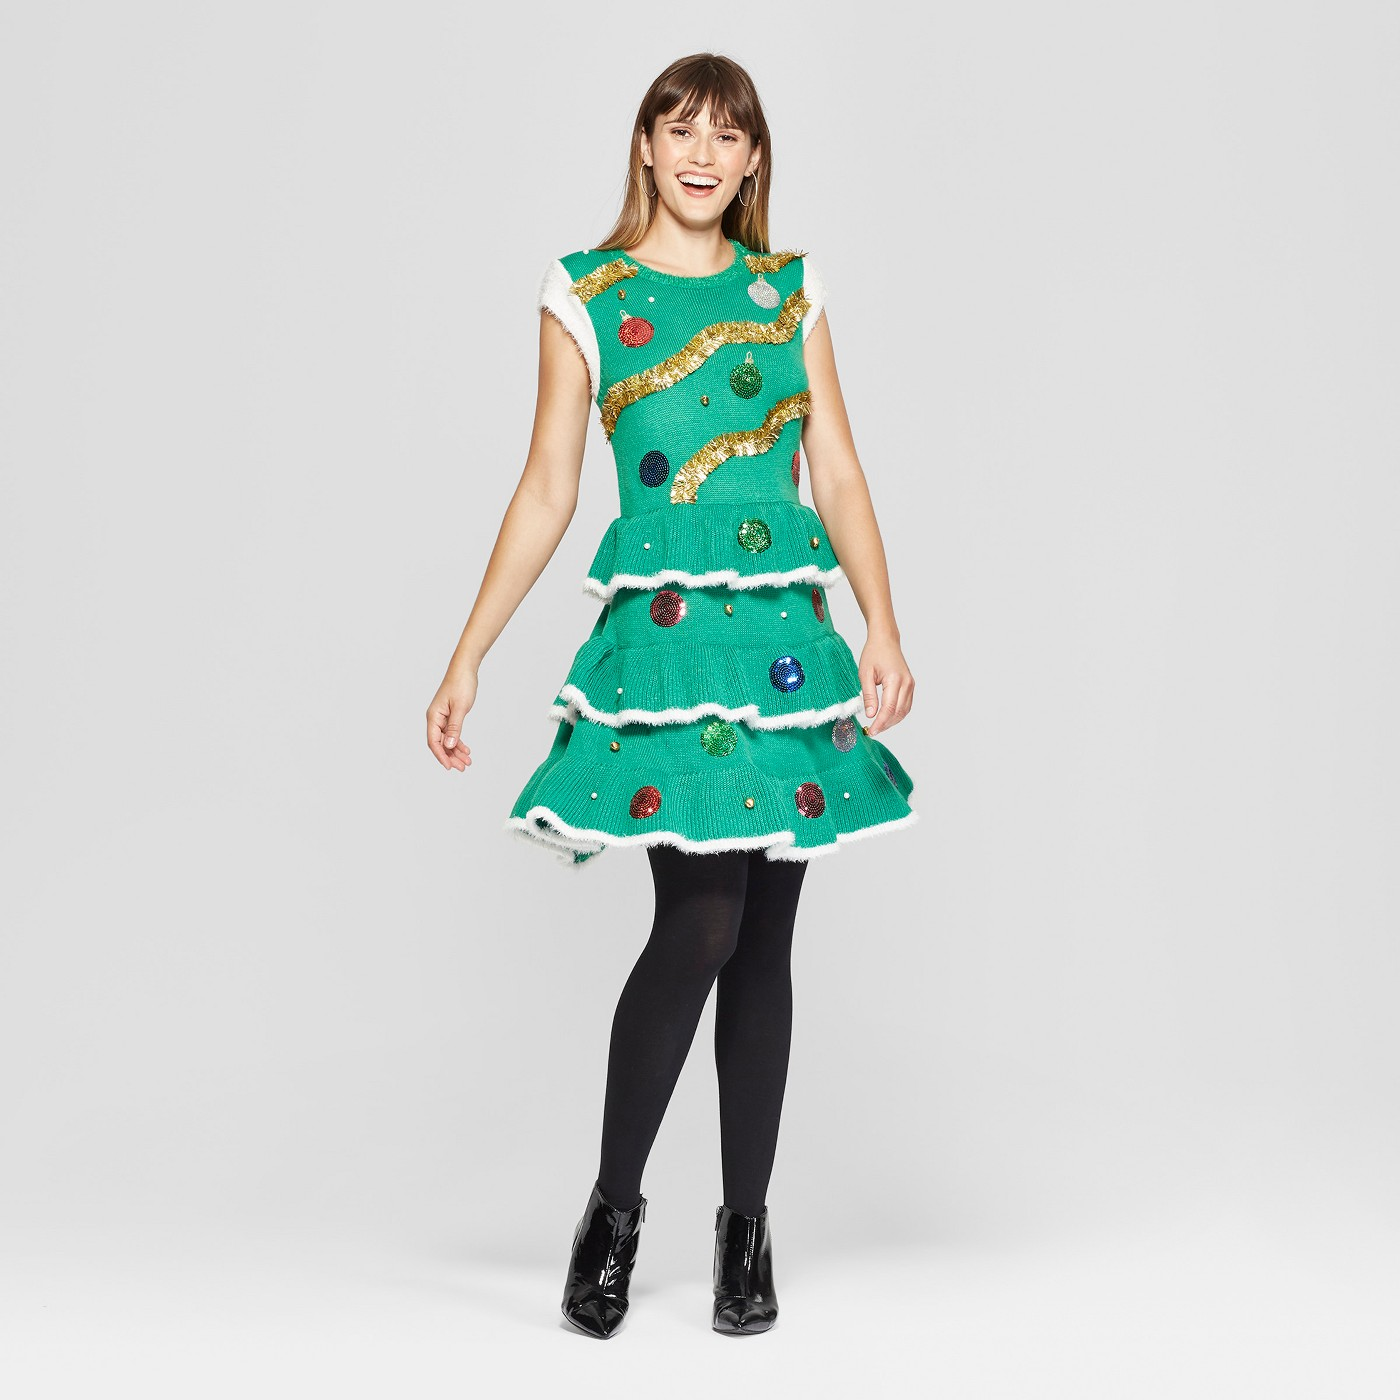 Women's Christmas Tree Dress - And if you want to go all out ugly… try this christmas tree sweater dress. ($39.99)